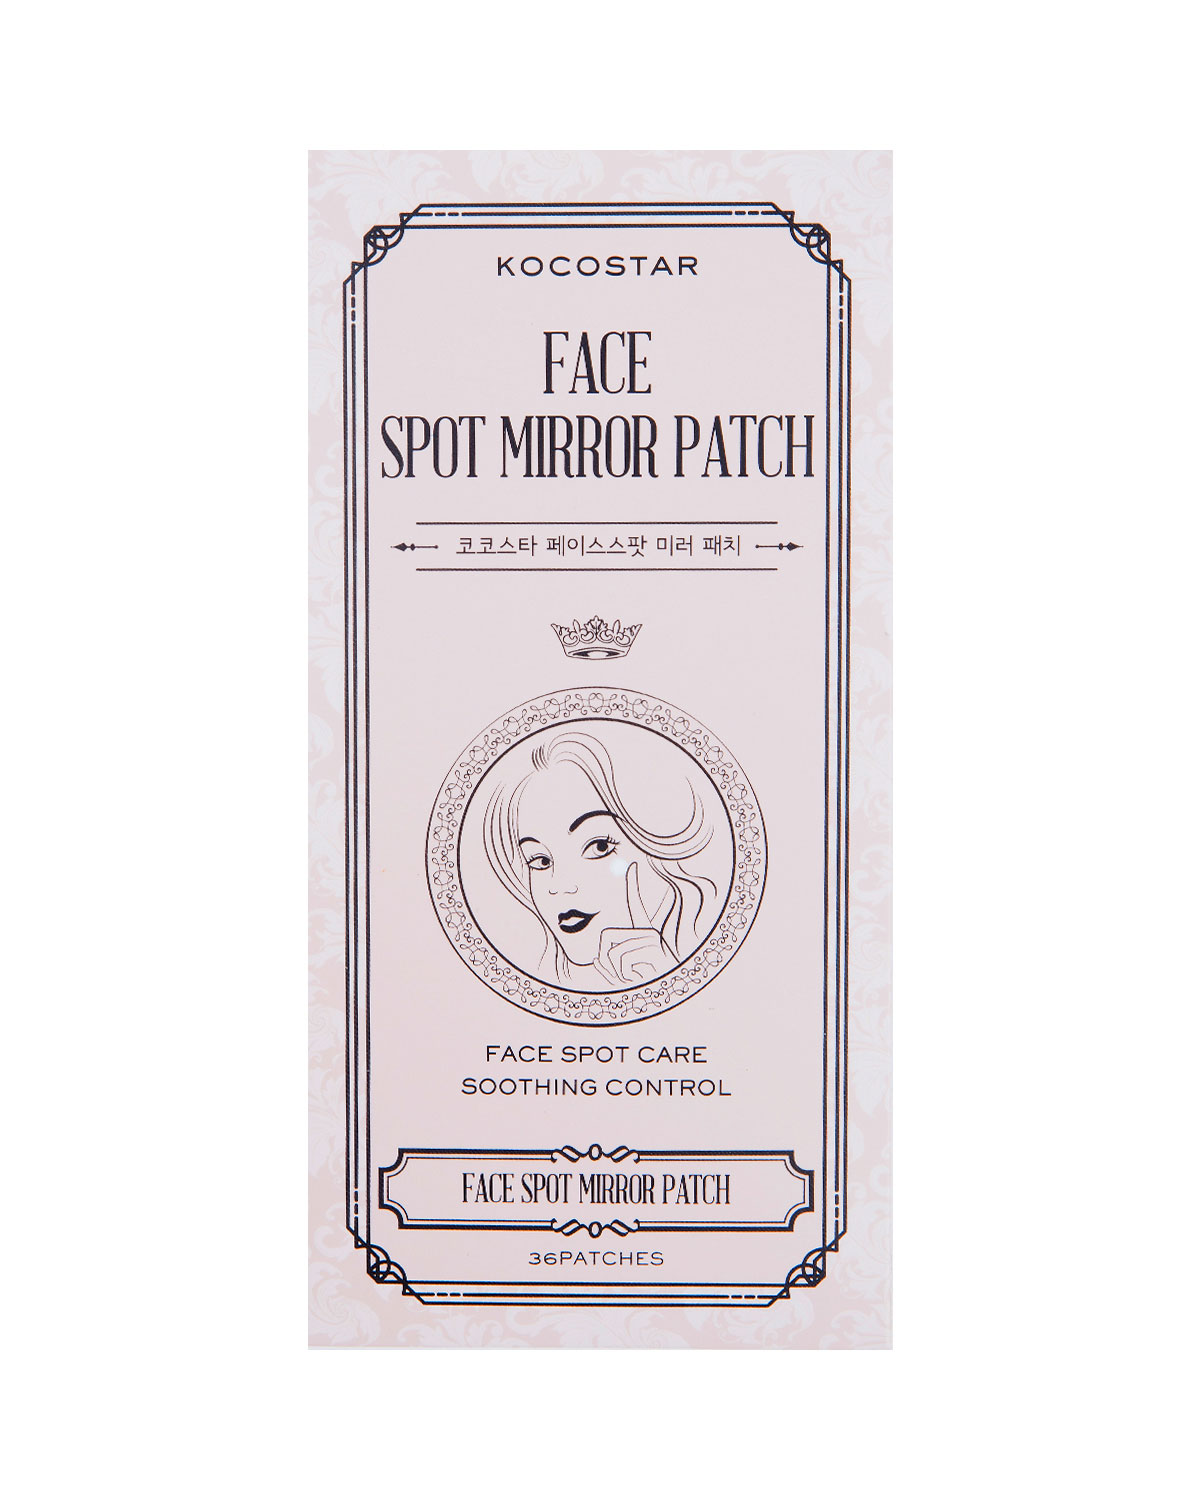 Neiman Marcus - KocostarFace Spot Mirror Patch